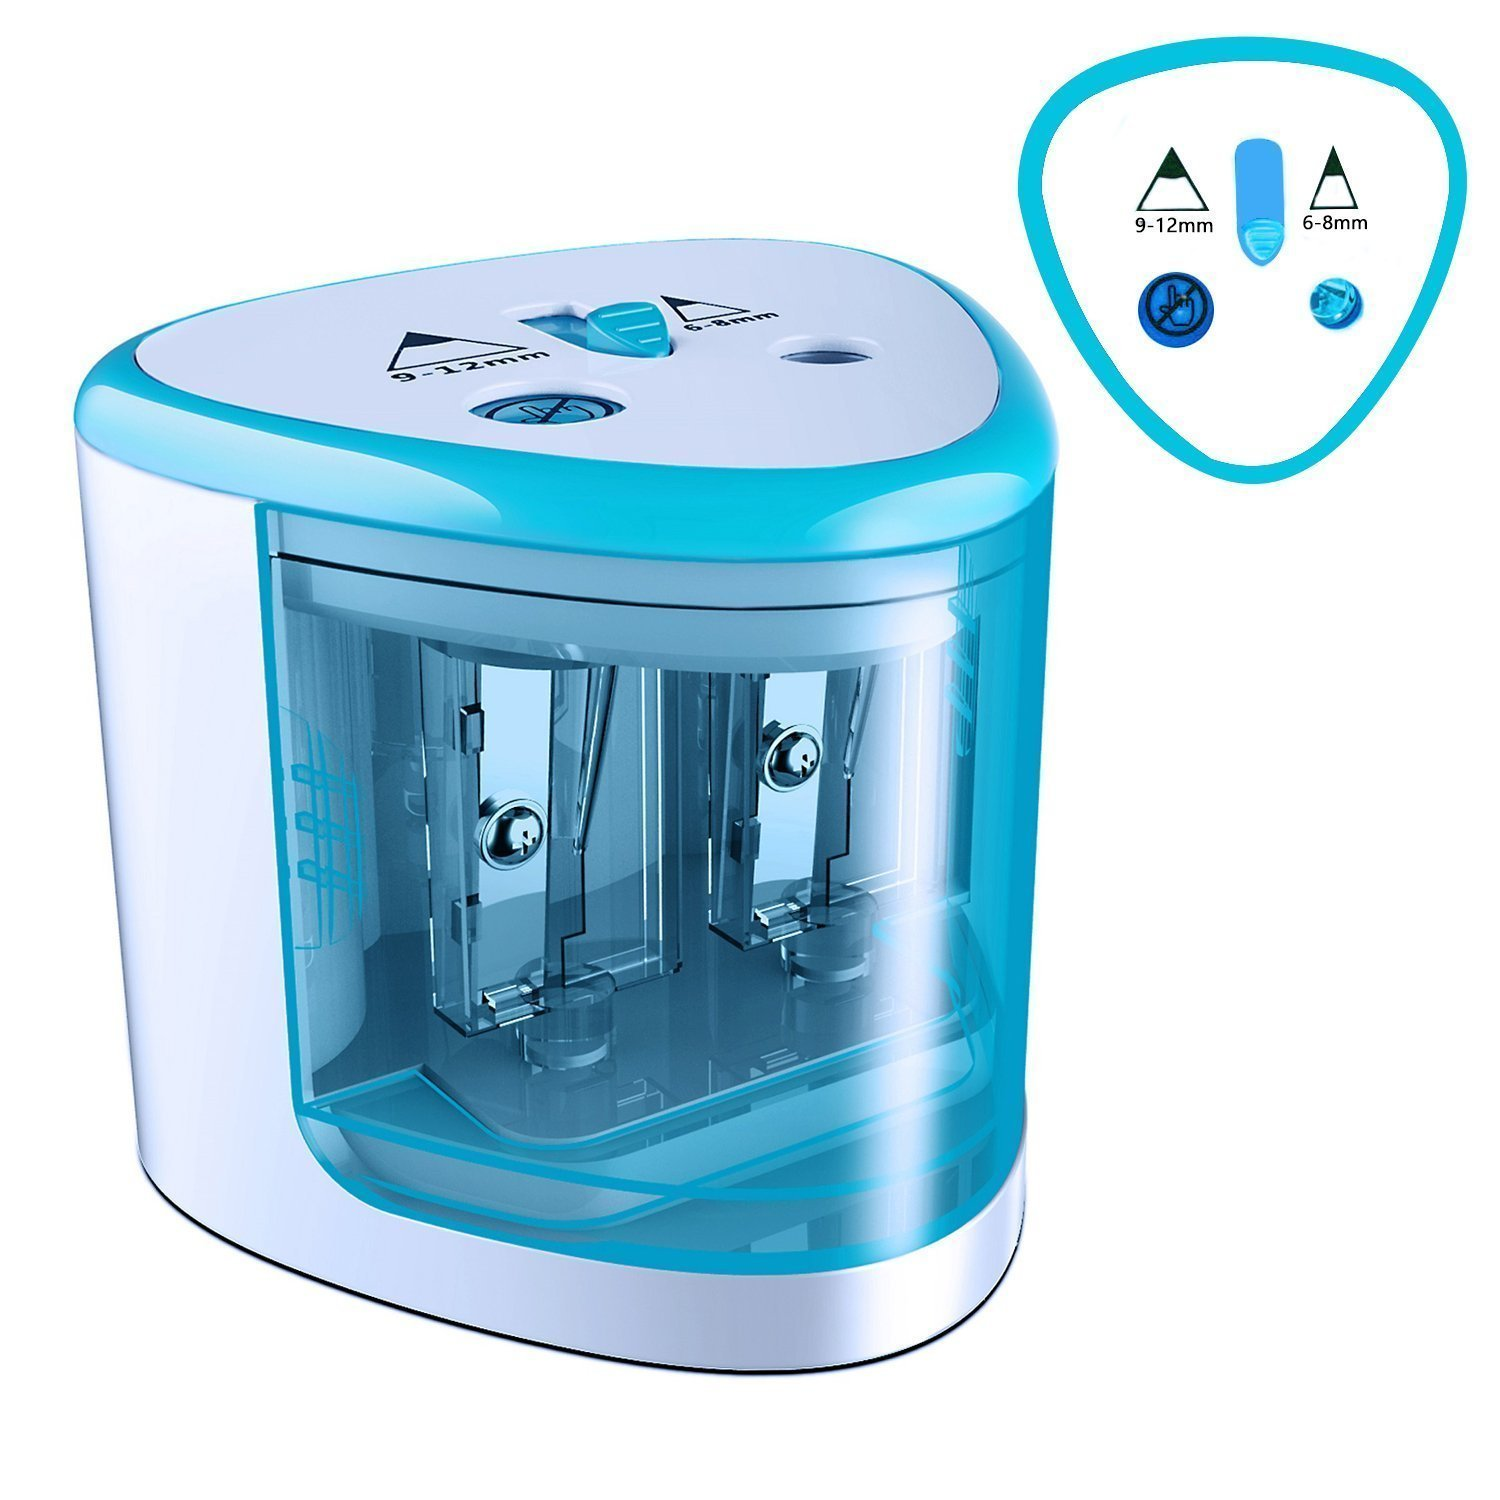 Electric Pencil Sharpener Heavy duty Blades Durable and Portable Pencil Sharpener with Automatic Sharpens for Kids, Adults, Artists, Pencil Sharpener Electric